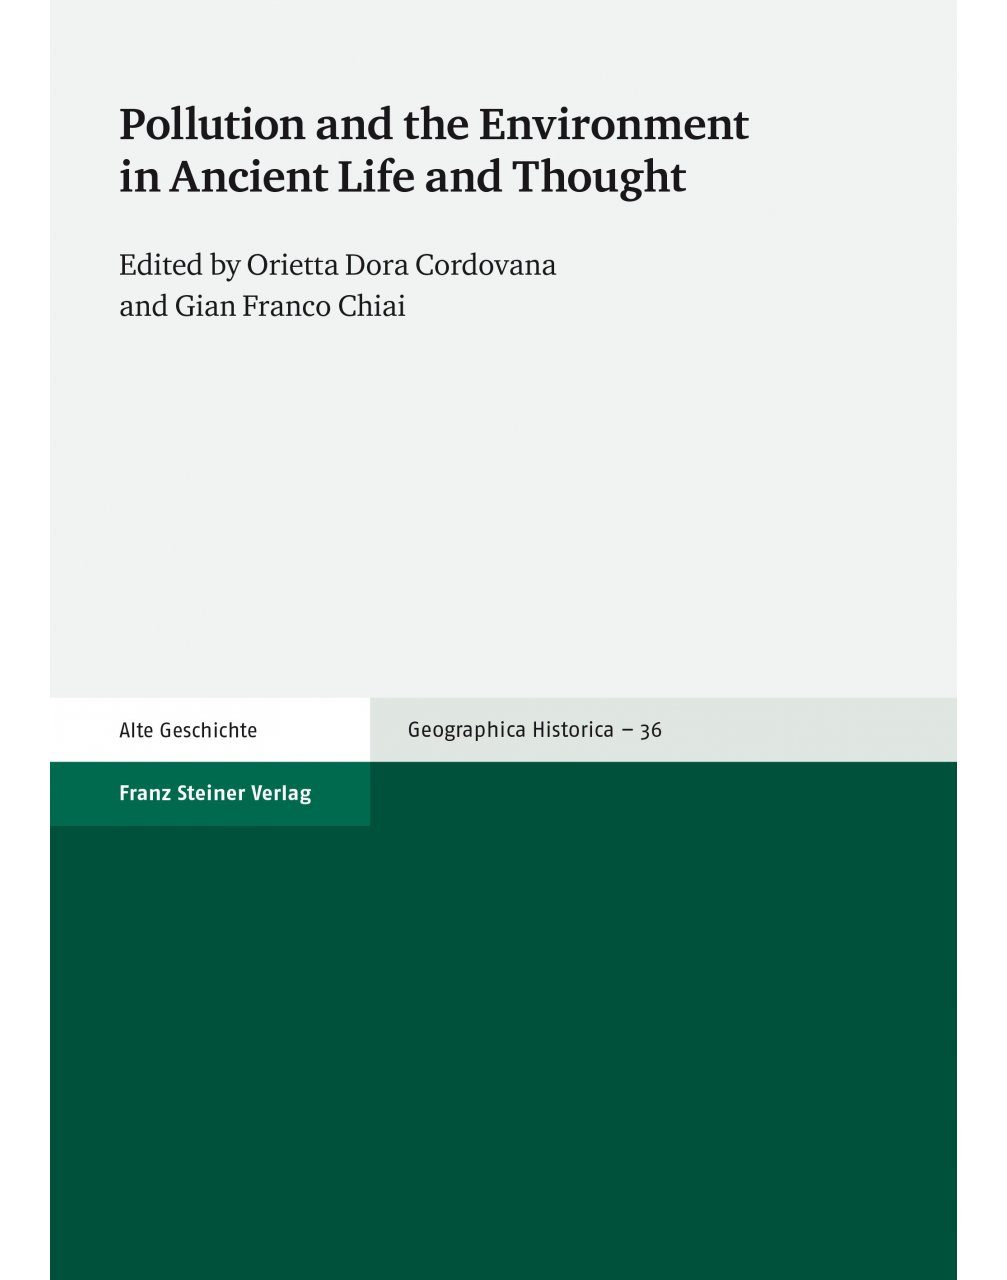 Pollution and the Environment in Ancient Life and Thought